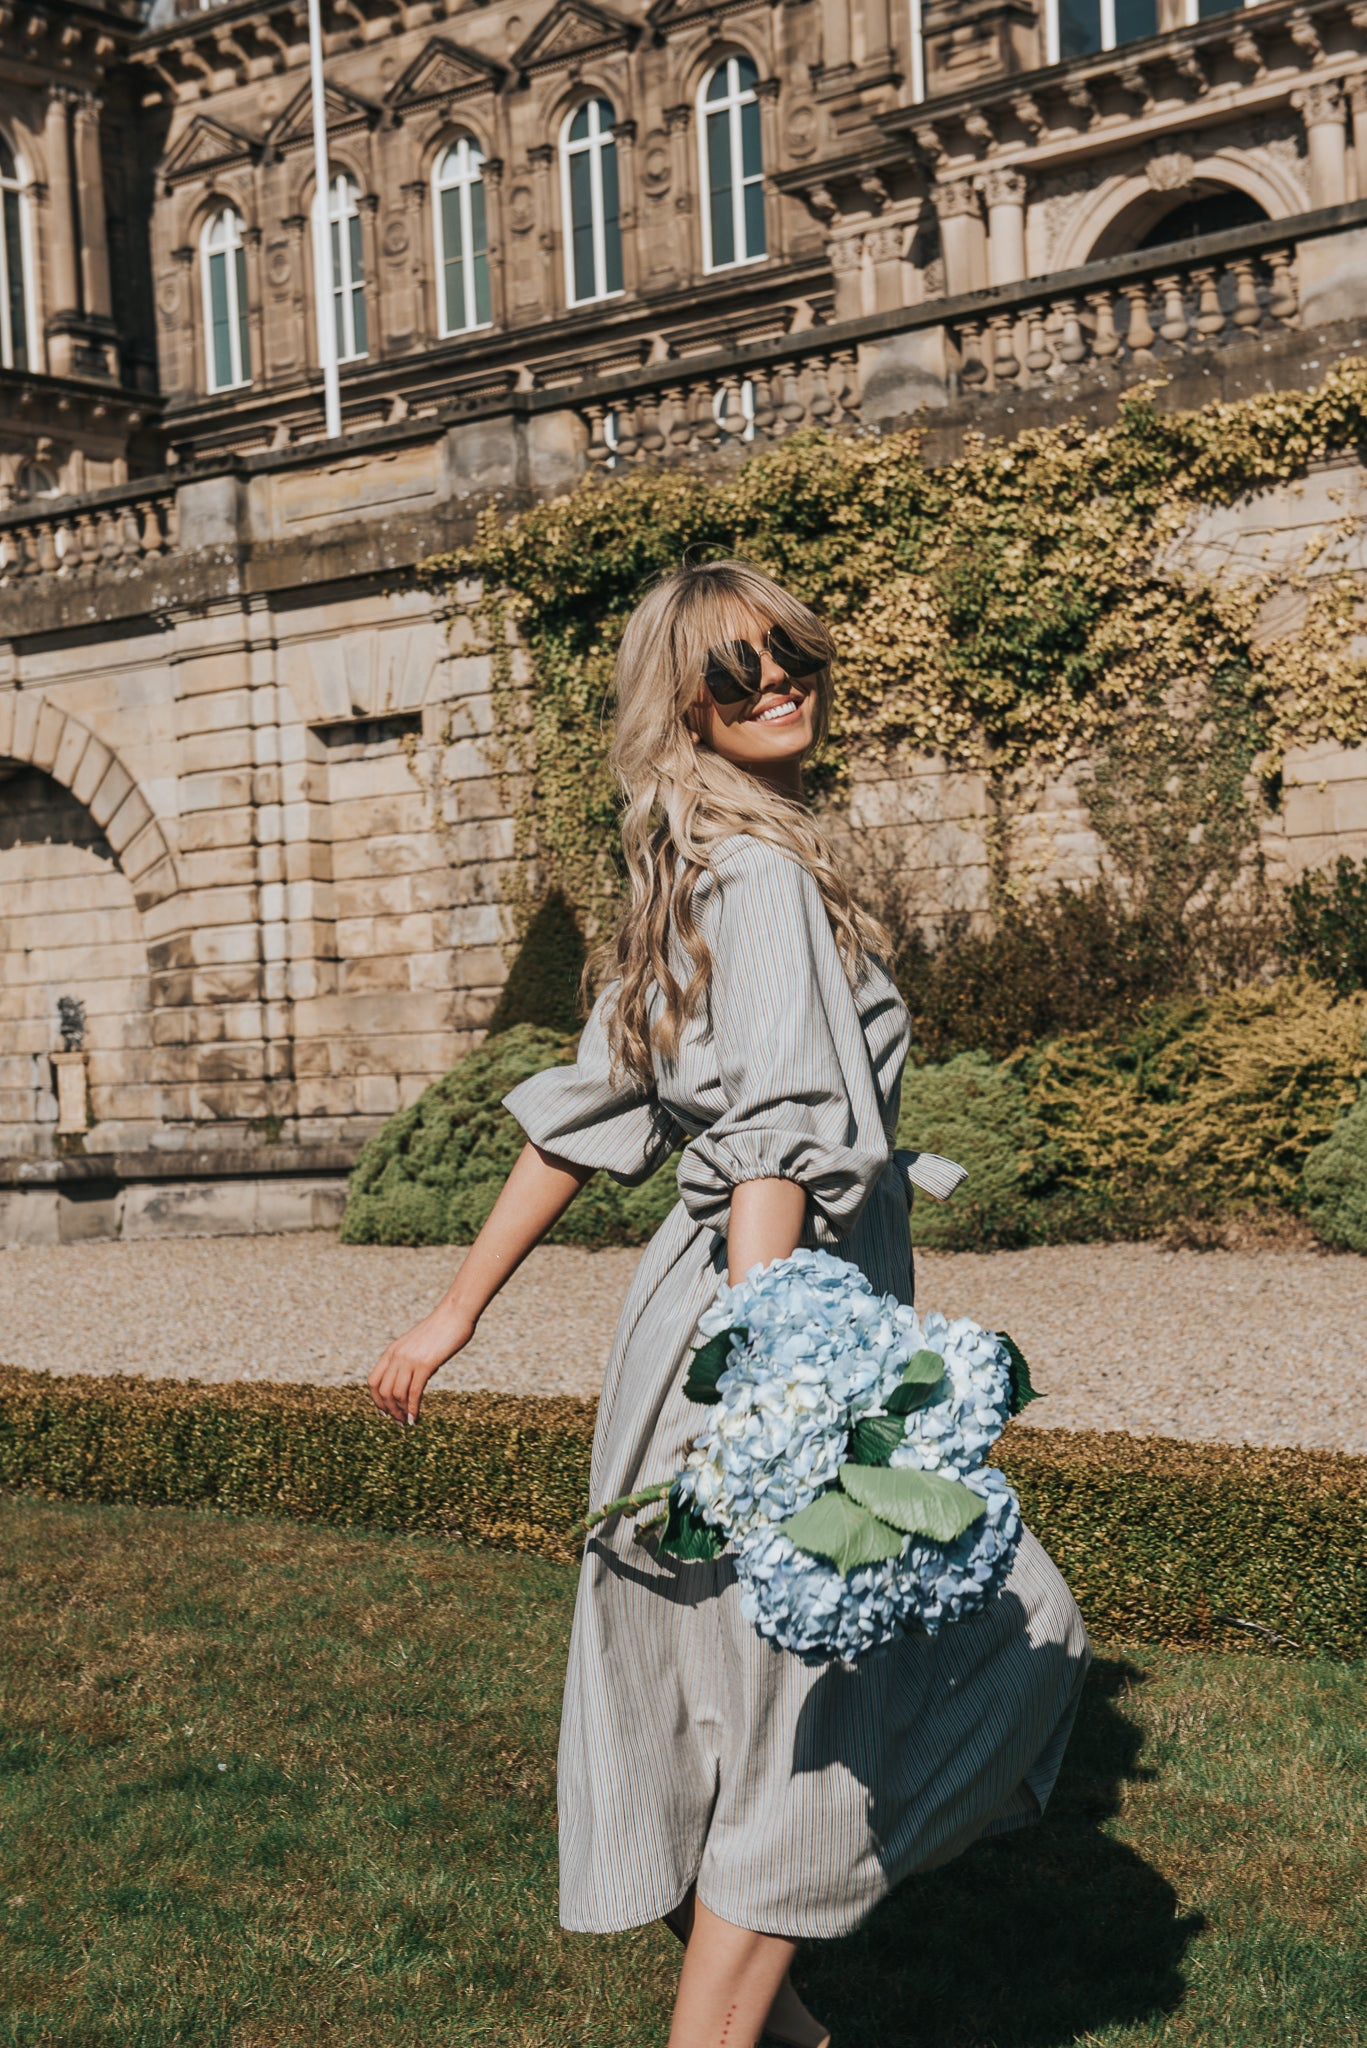 Dancing in the sunshine with fresh flowers. The Georgiana dress is the perfect style to explore french chateau grounds, in this image you can see how the detail in the oversized puff sleeve silhoutette